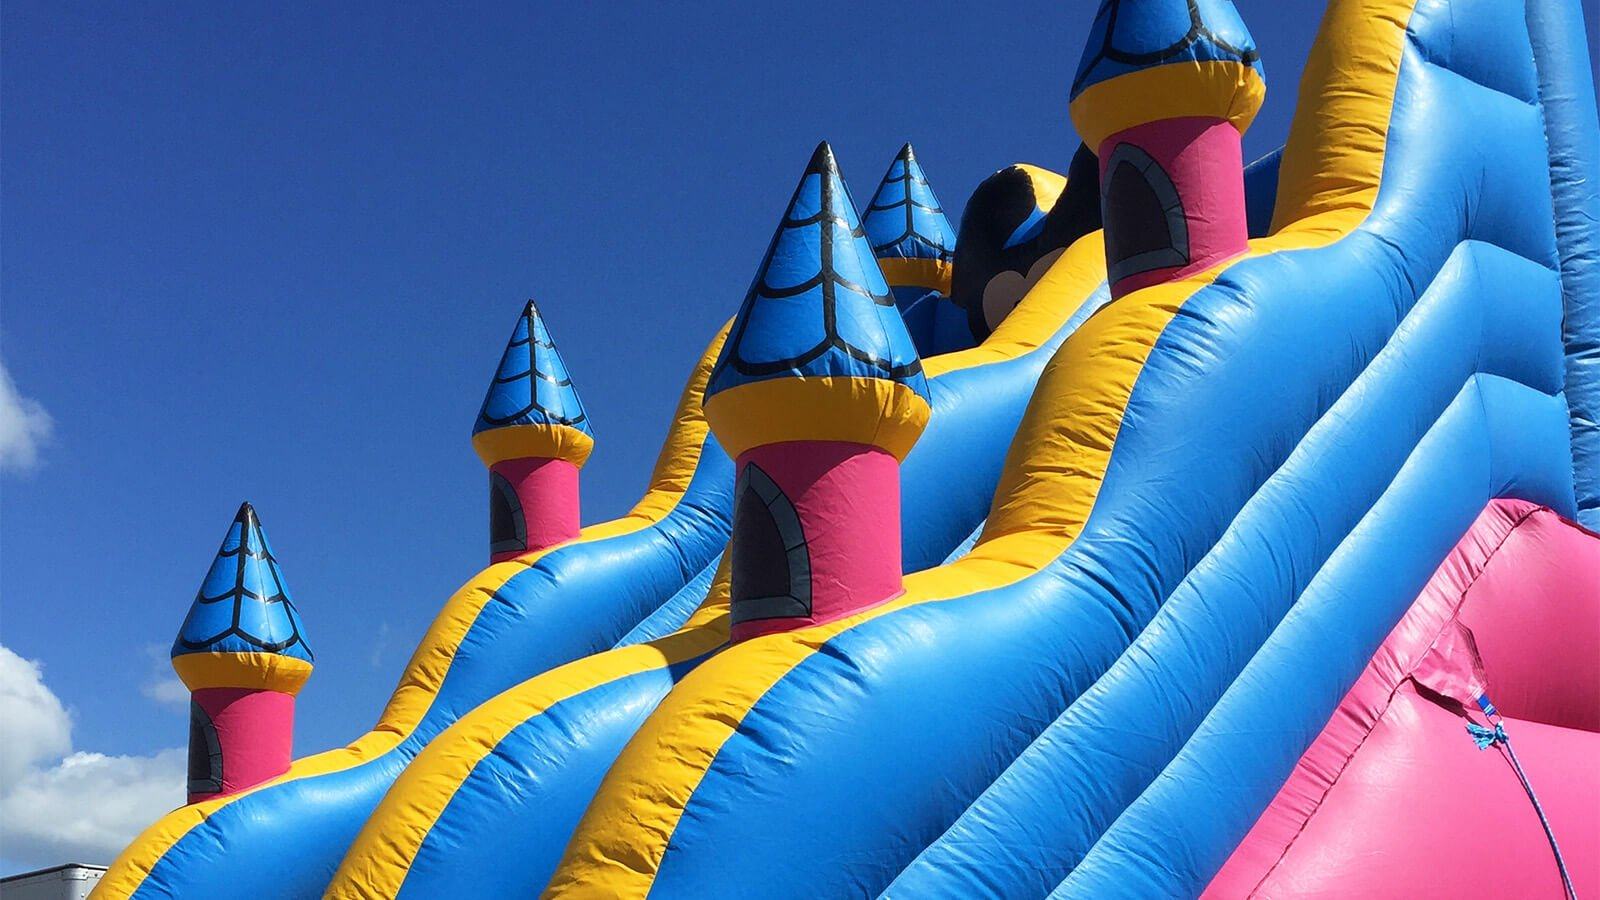 Inflatable fun comes in the form of bouncy castles, inflatable slides, bungee runs and various other larger than life games.